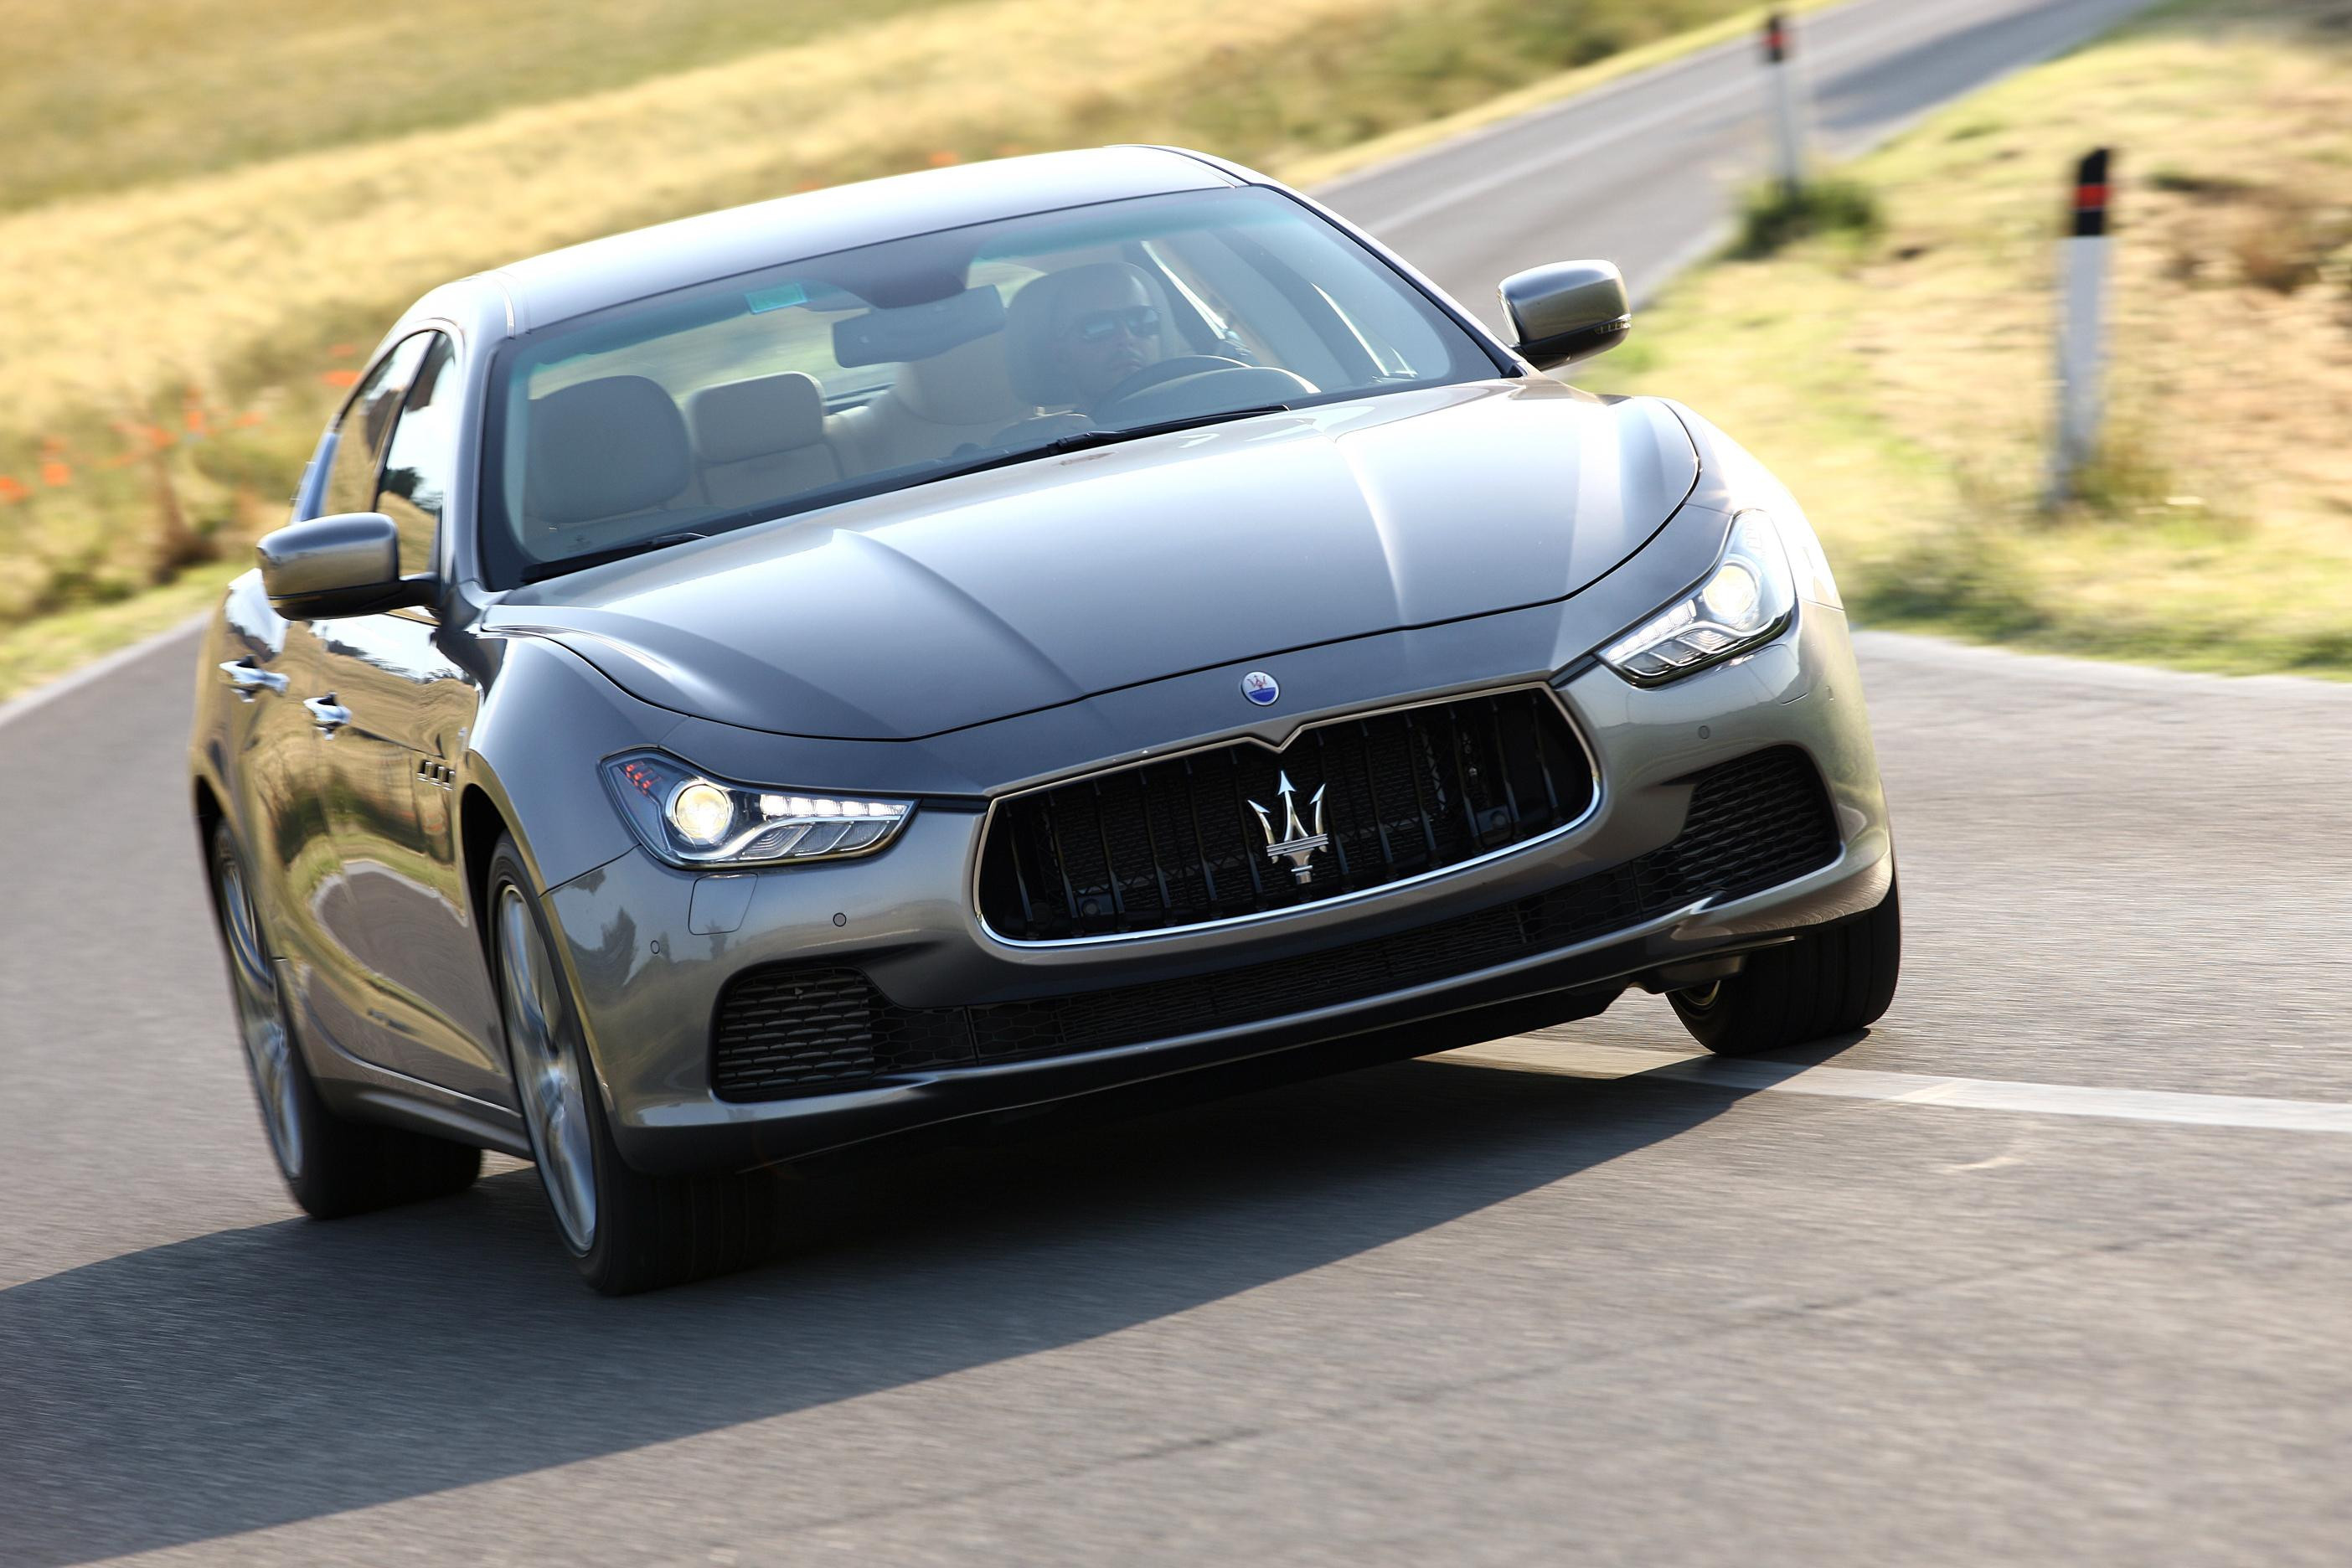 Maserati Ghibli driving on a road